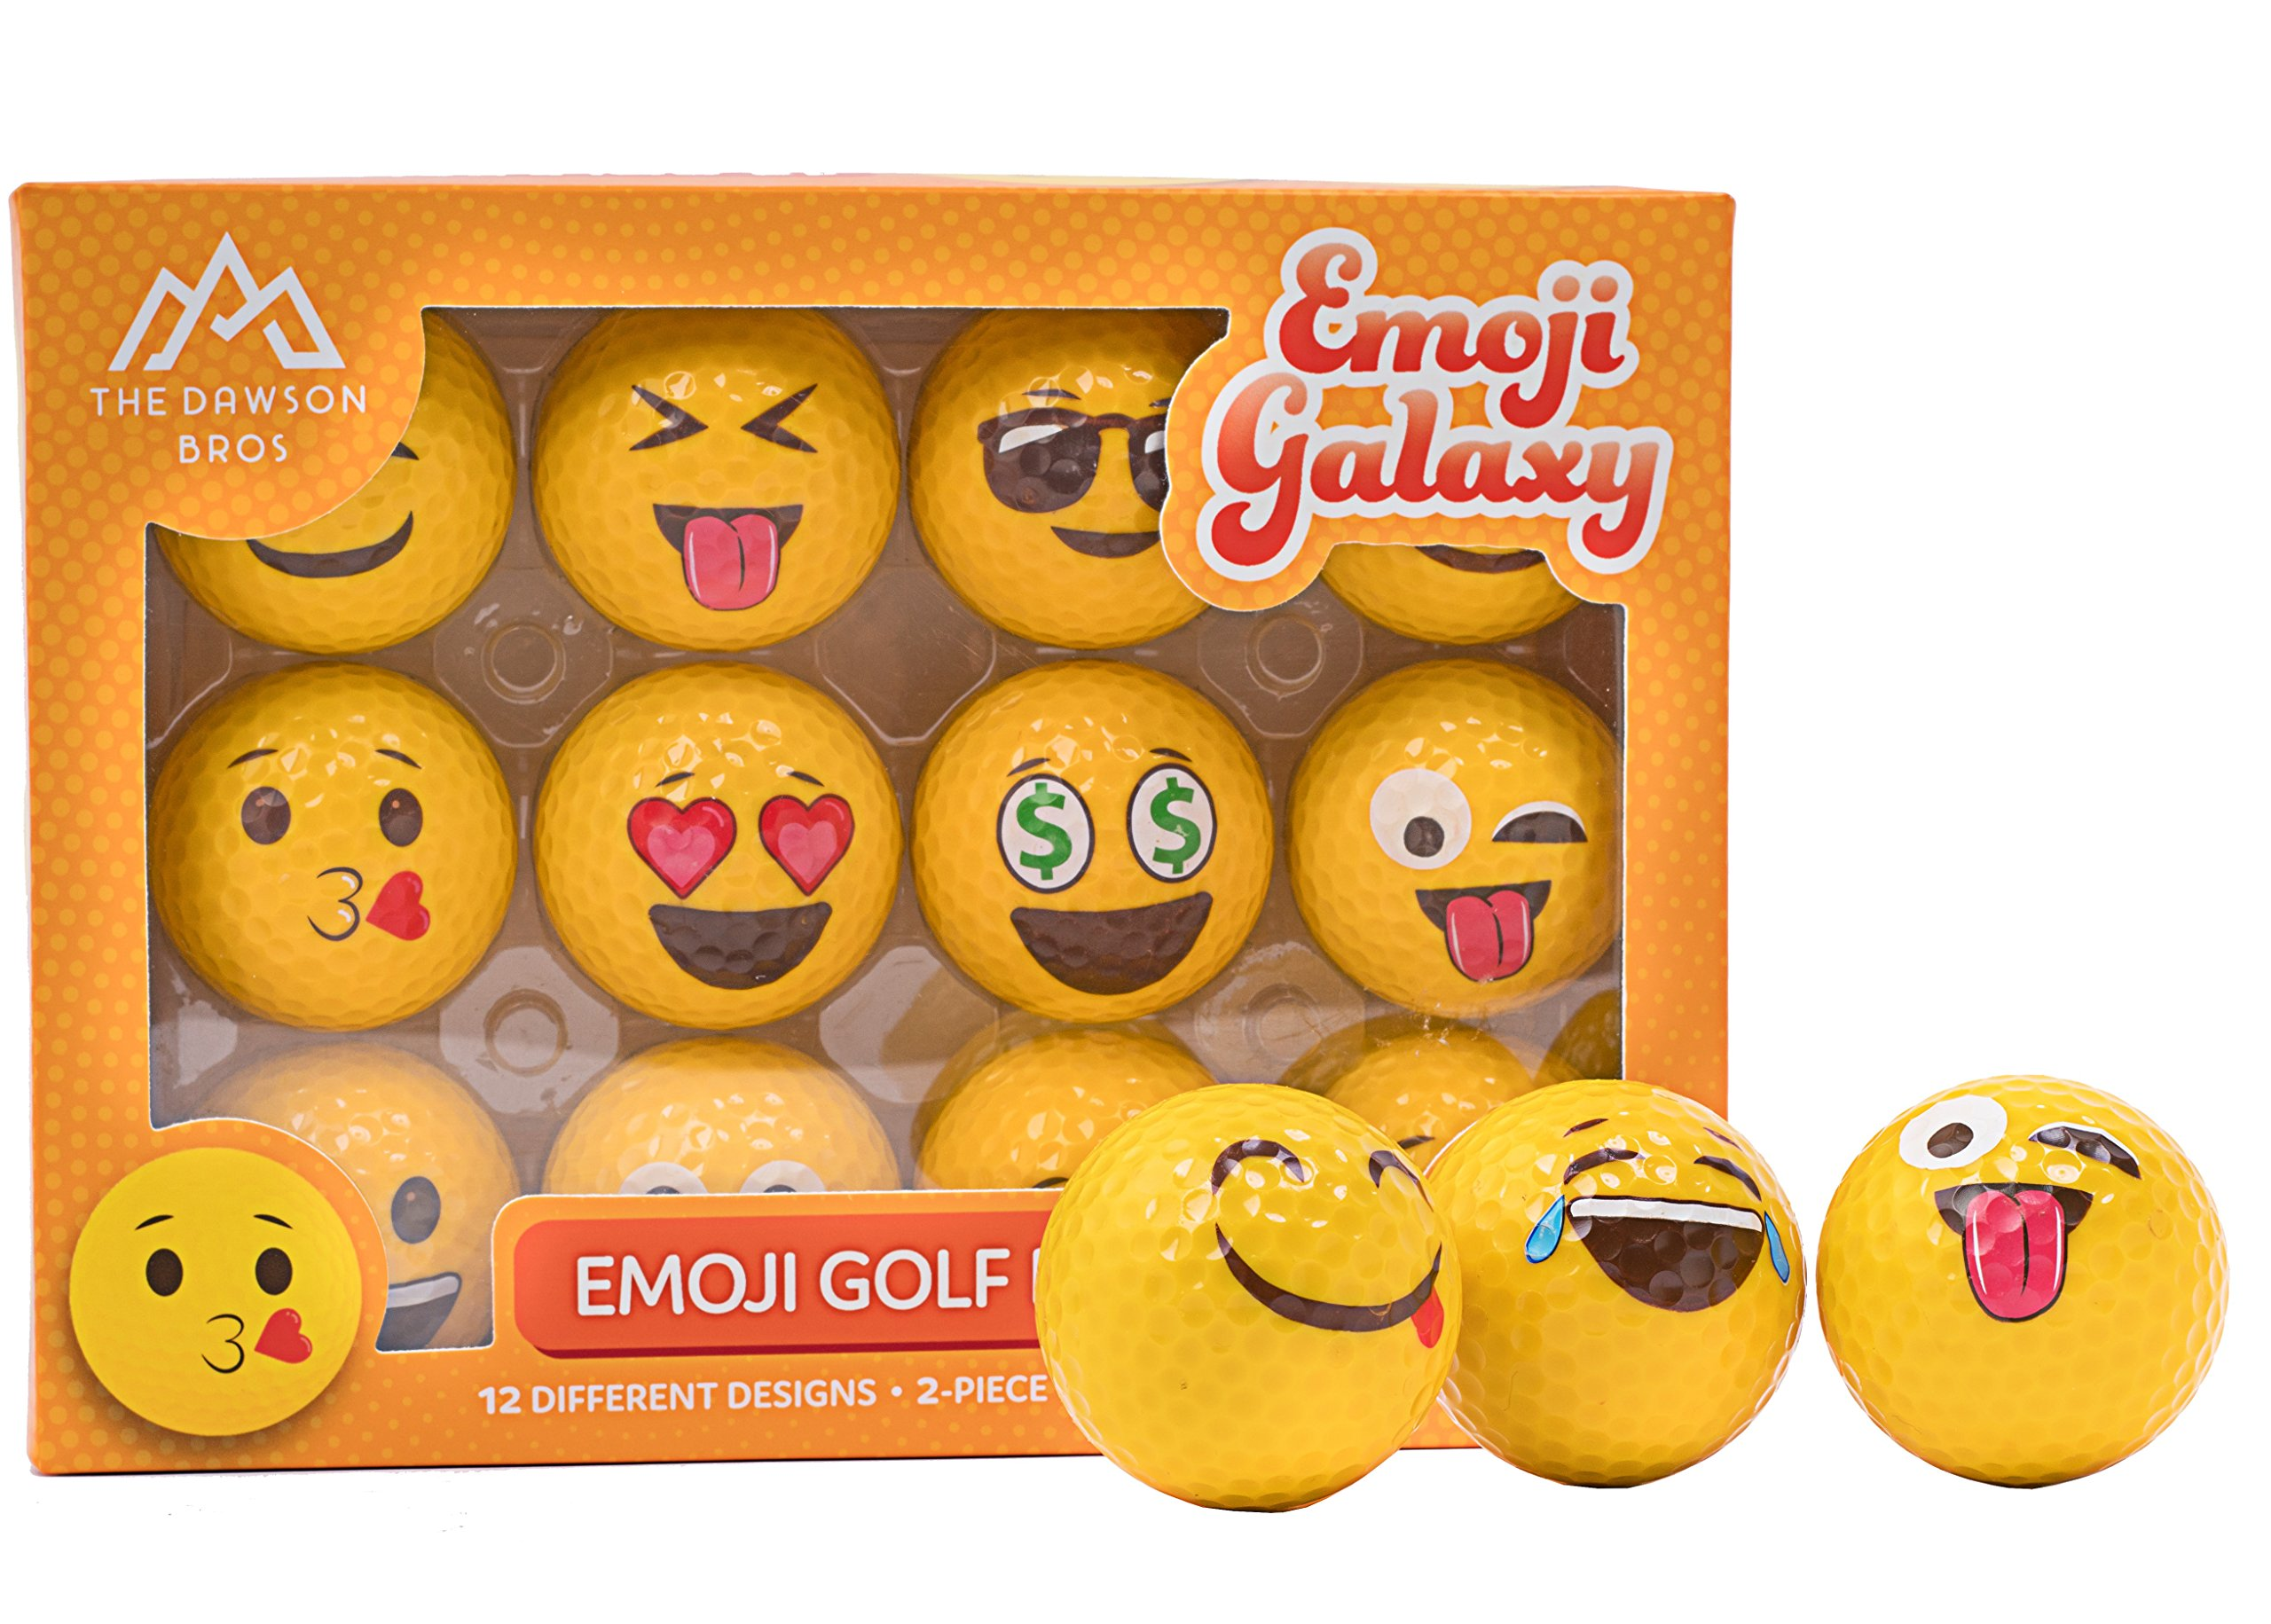 The Dawson Bros Emoji Galaxy - Professional Practice Golf Balls - 12 Pack - Best Gift for family